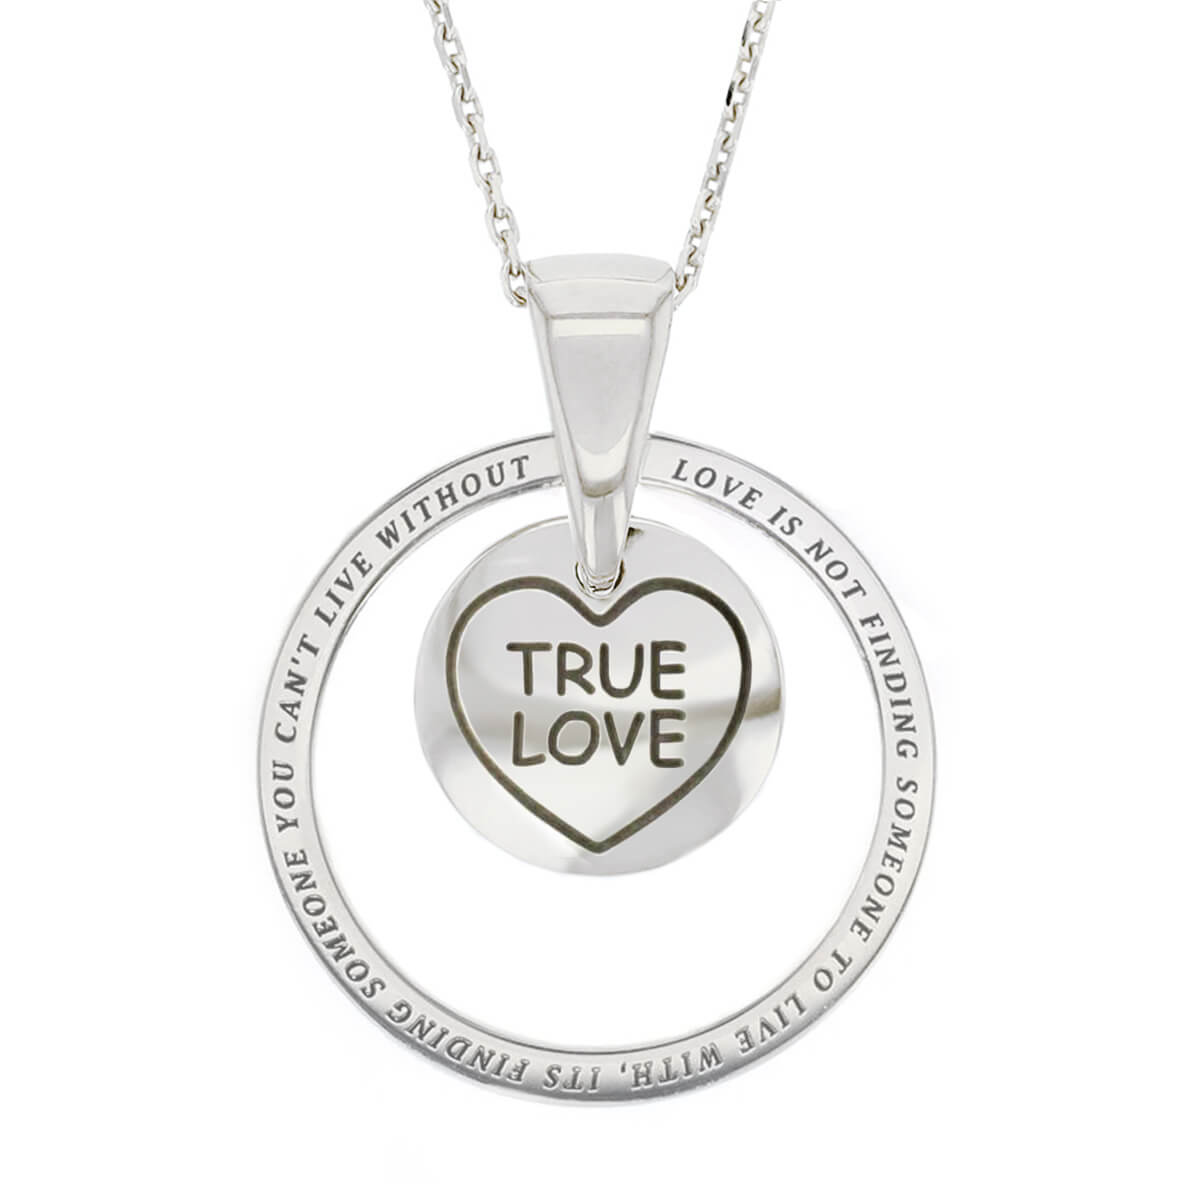 Faller Kryptos necklace, sterling silver, message pendant, personalised engraving, make your own, jewellery, gift, celebration, symbol, claddagh, true love, lovehearts pendant